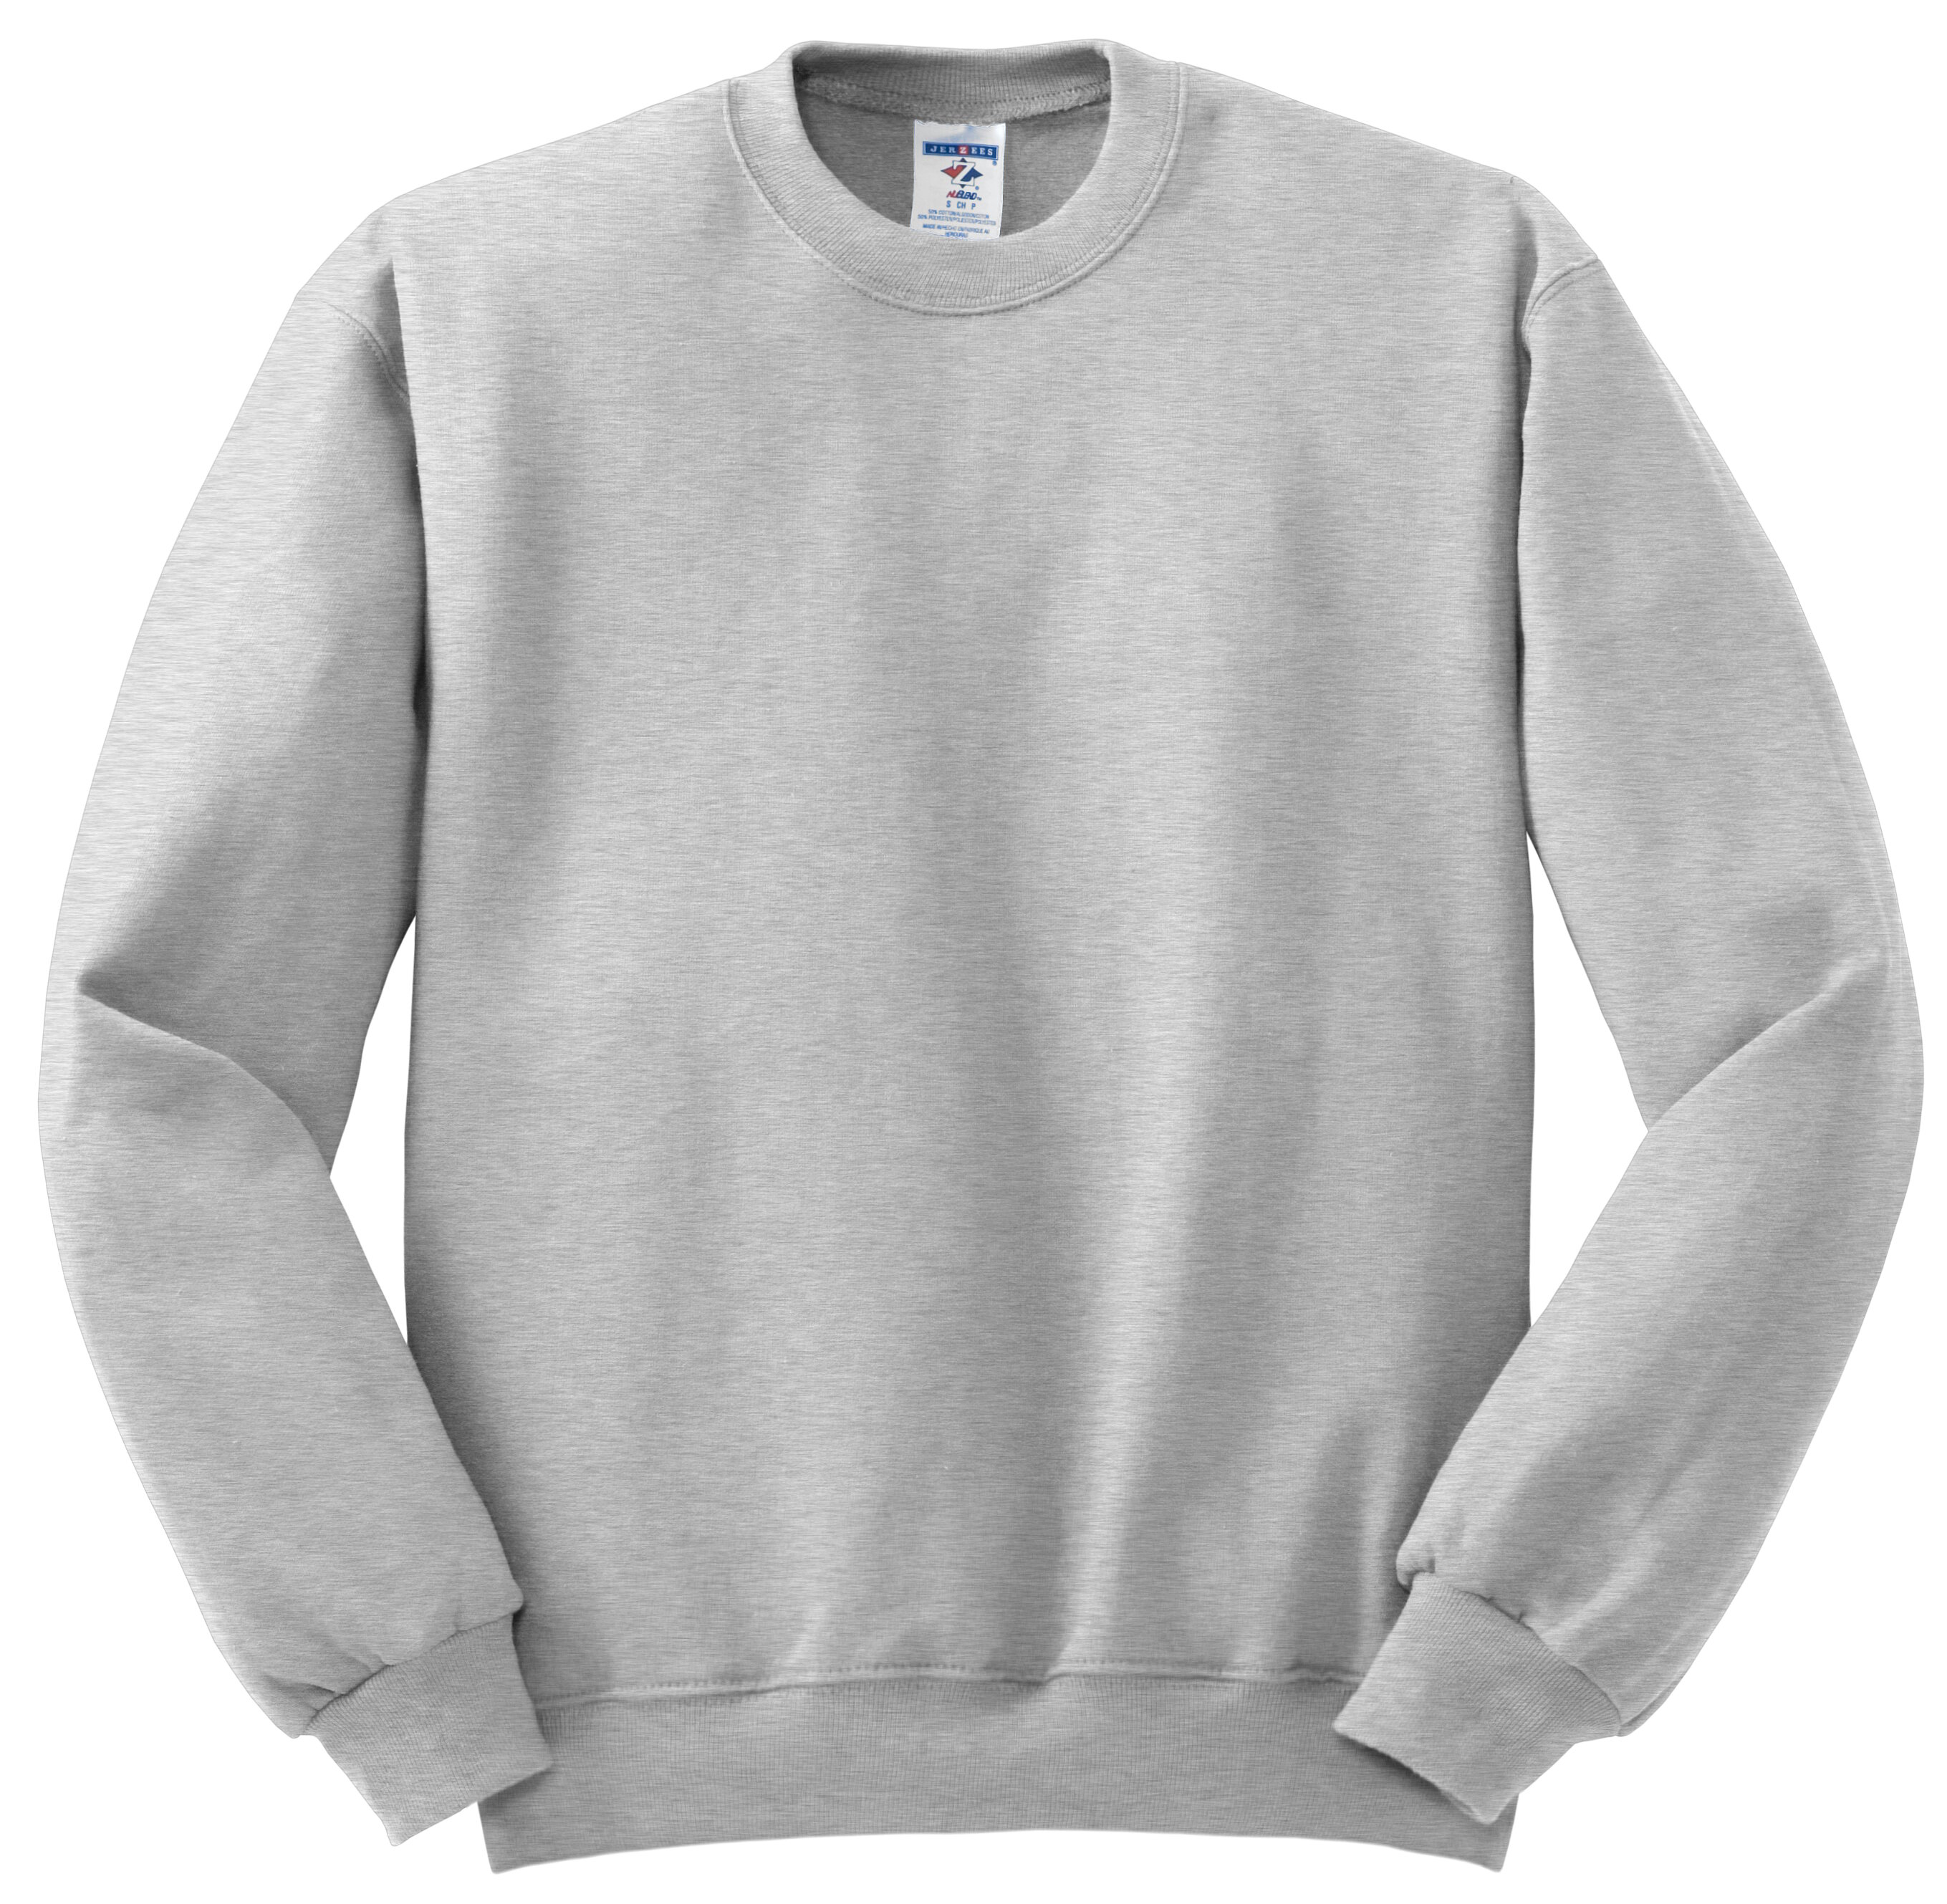 Image result for sweatshirts